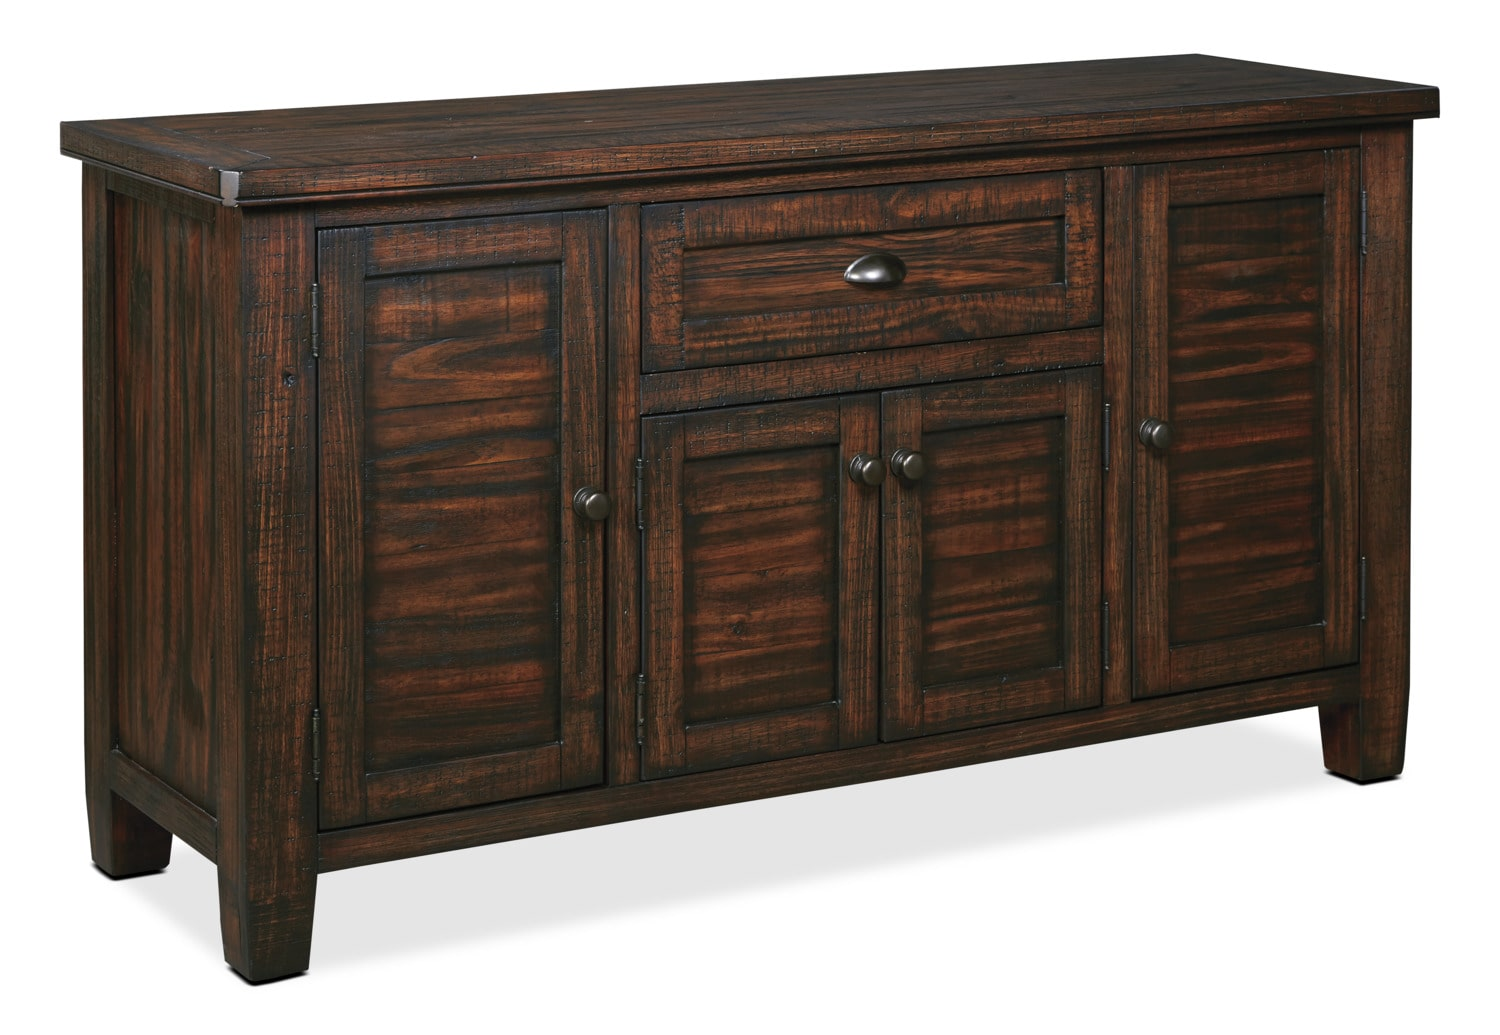 Dining Room Furniture - Trudell Server